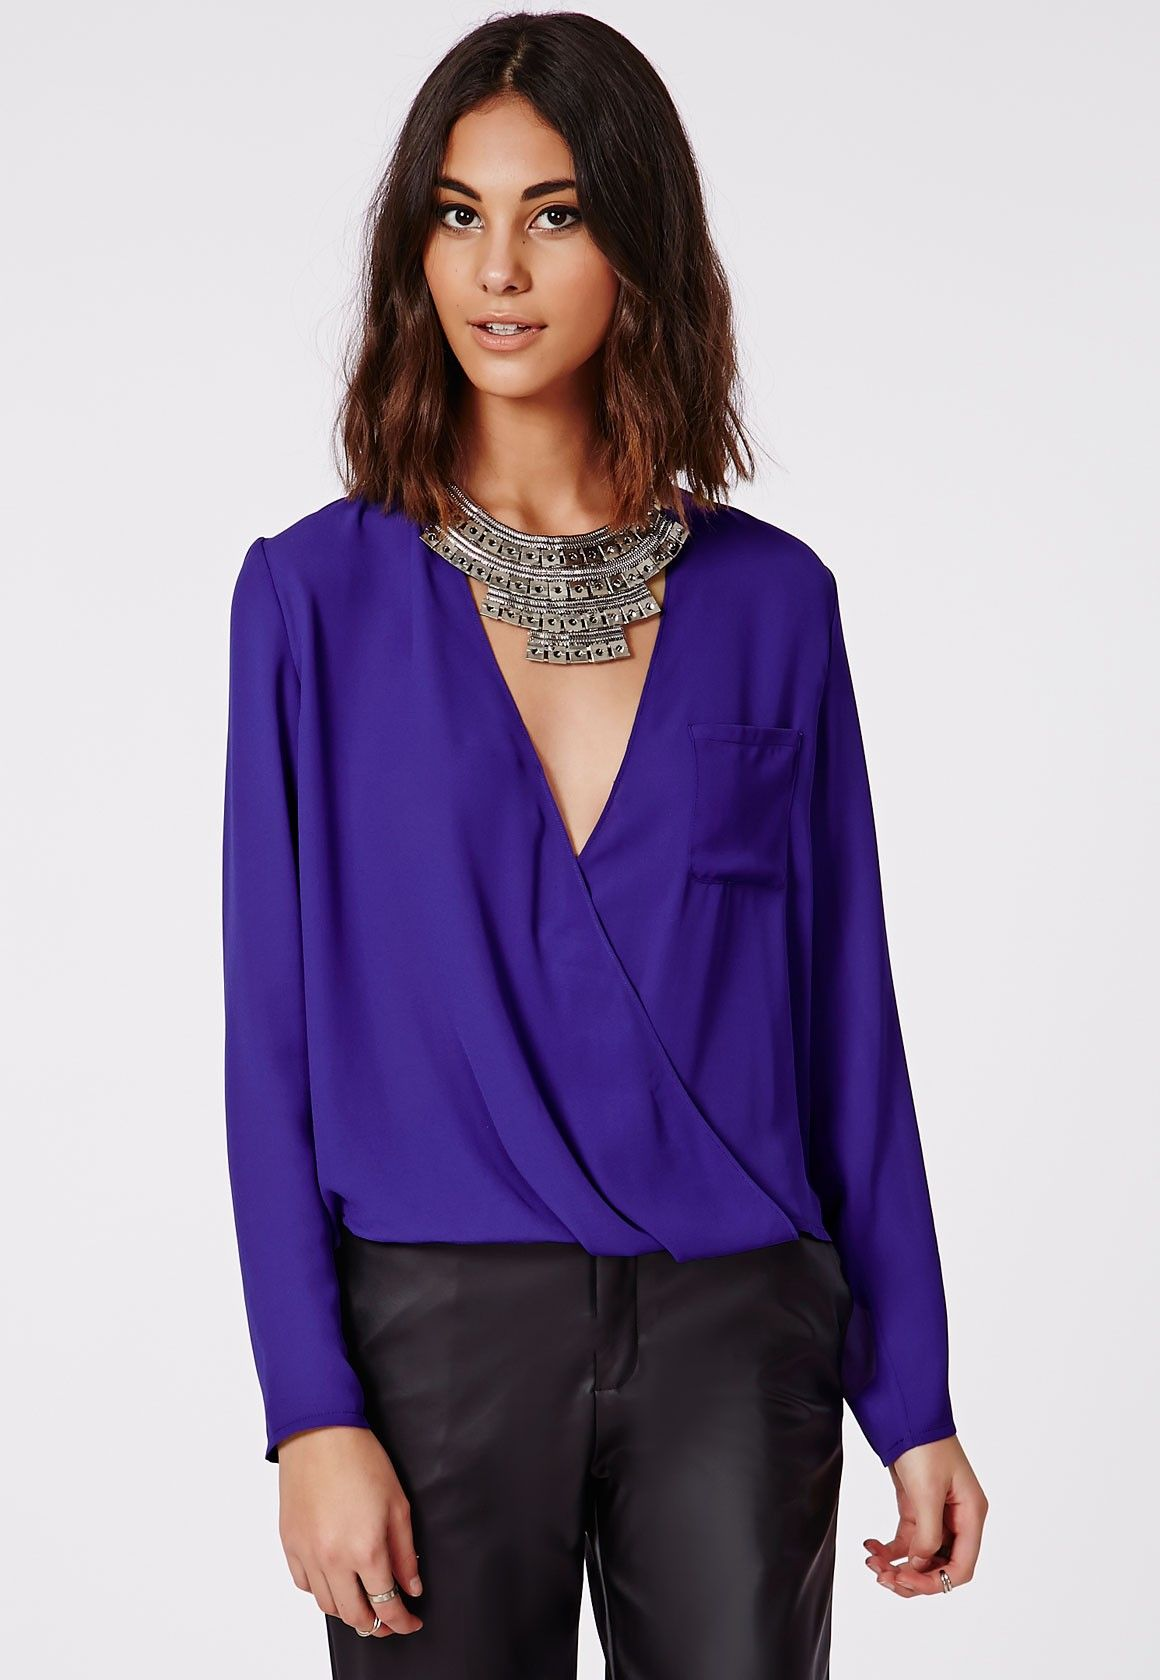 blouses by atmosphere images - Google Search | best look,best style ...